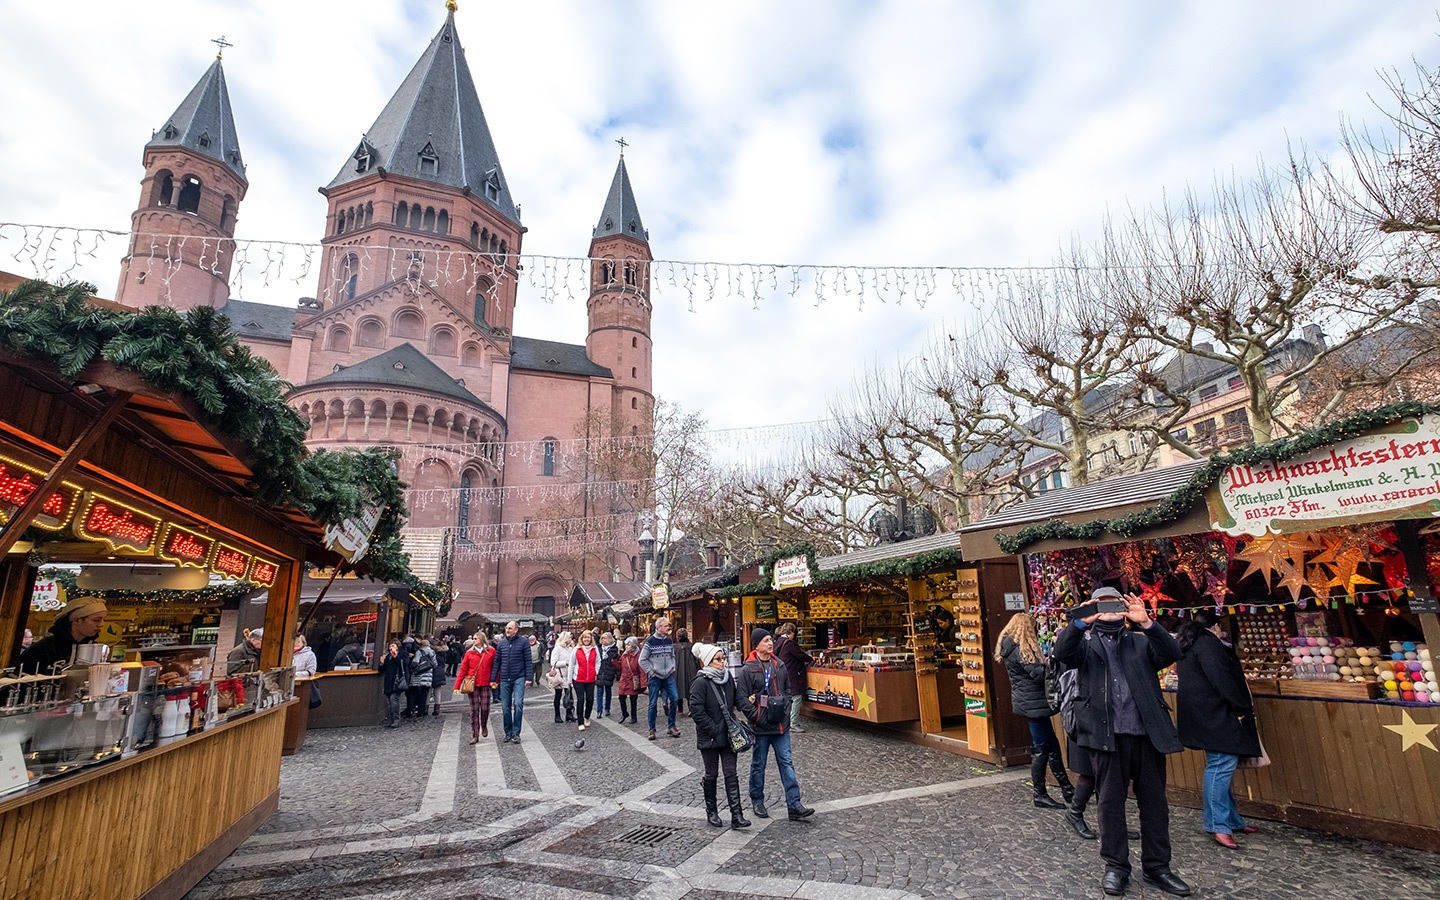 Mainz cathedral and Christmas market